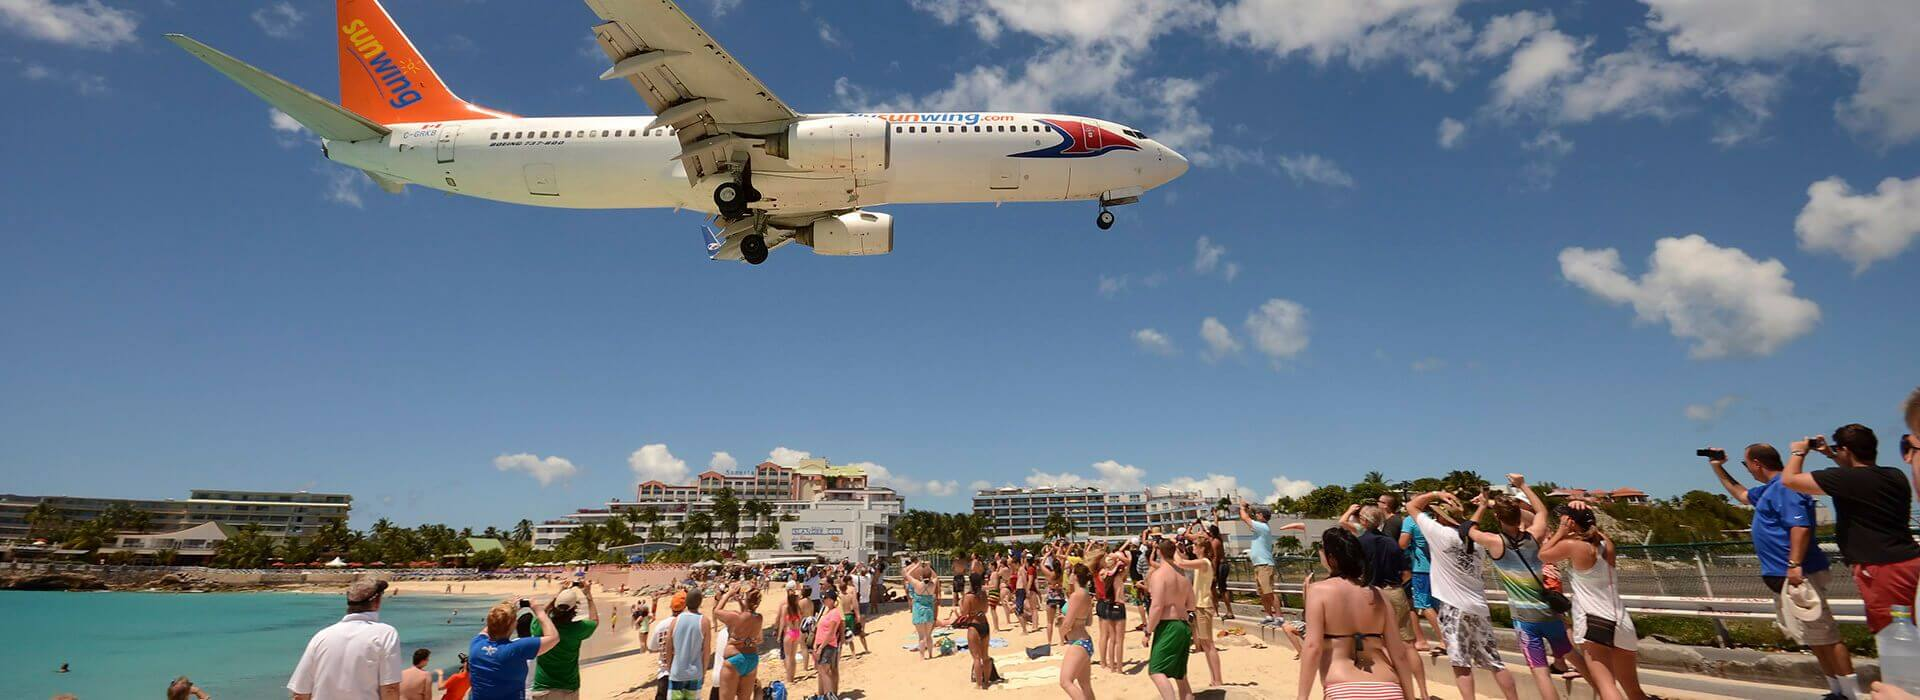 St Maarten airport by the beach